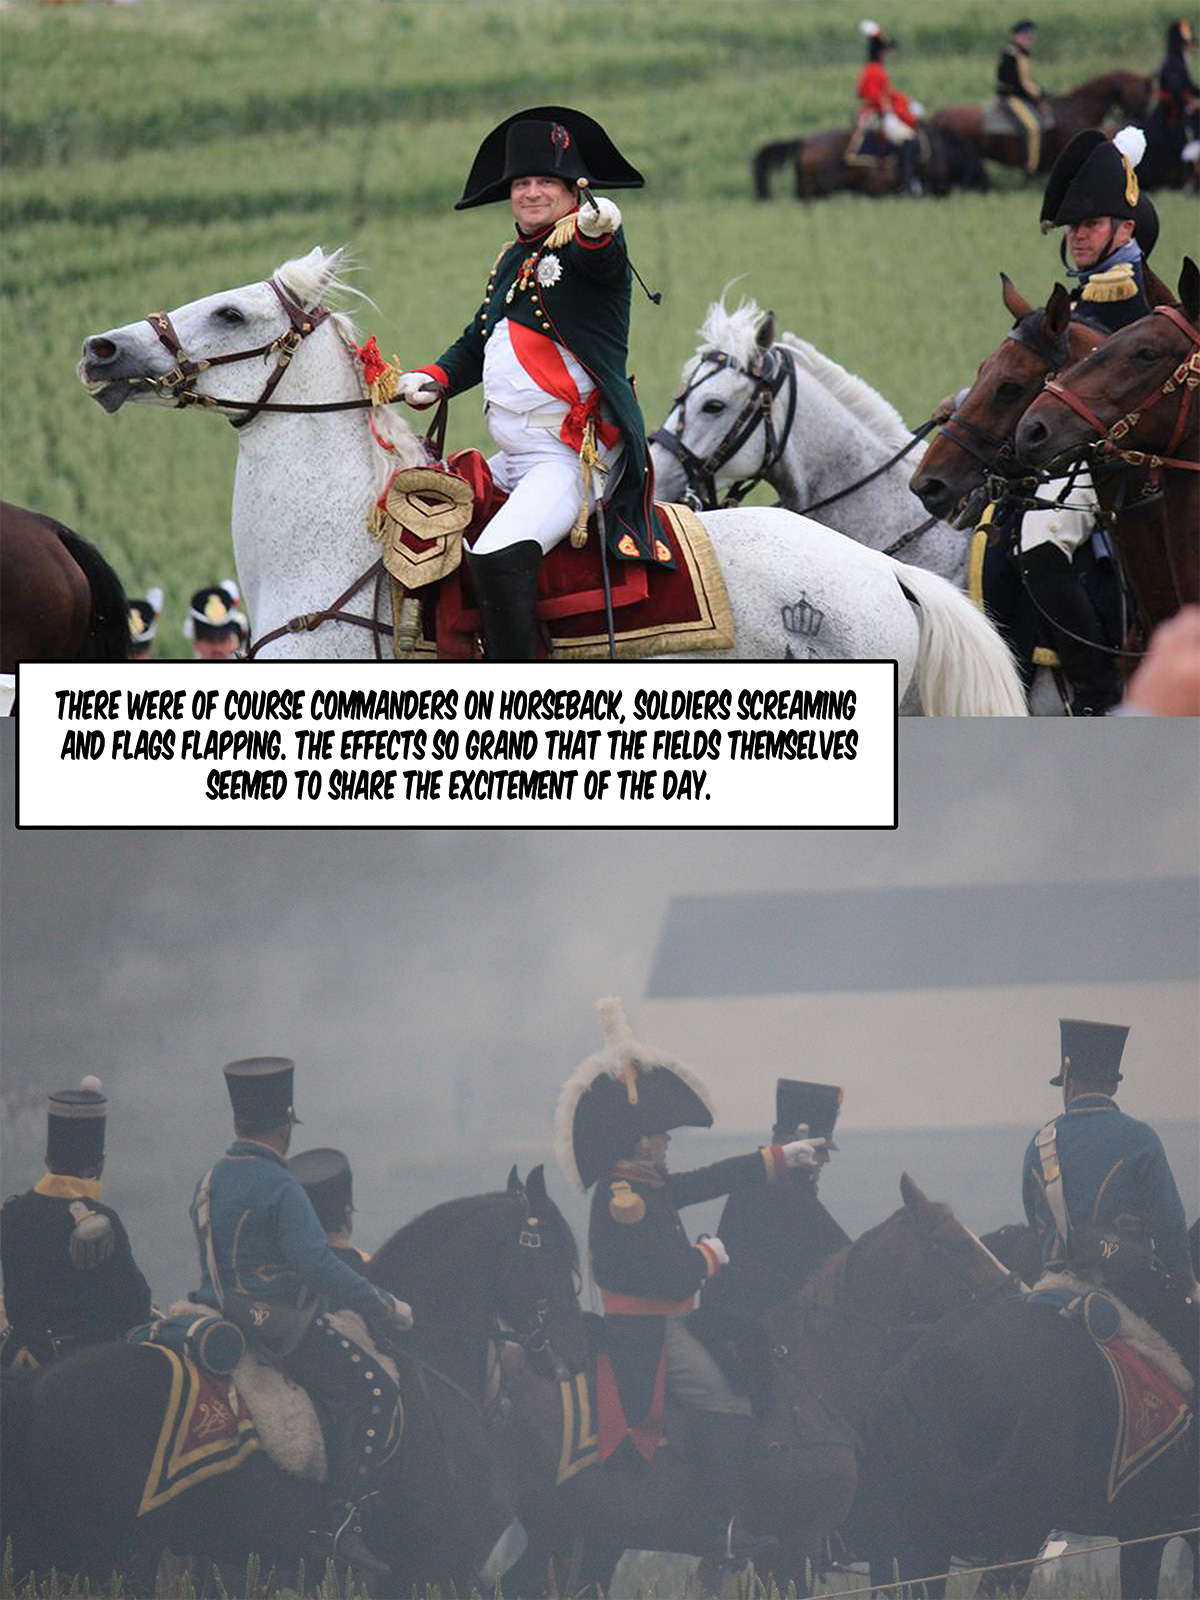 There were of course commanders on horseback, soldiers screaming and flags flapping. The effects so grand that the fields themselves seemed to share the excitement of the day.